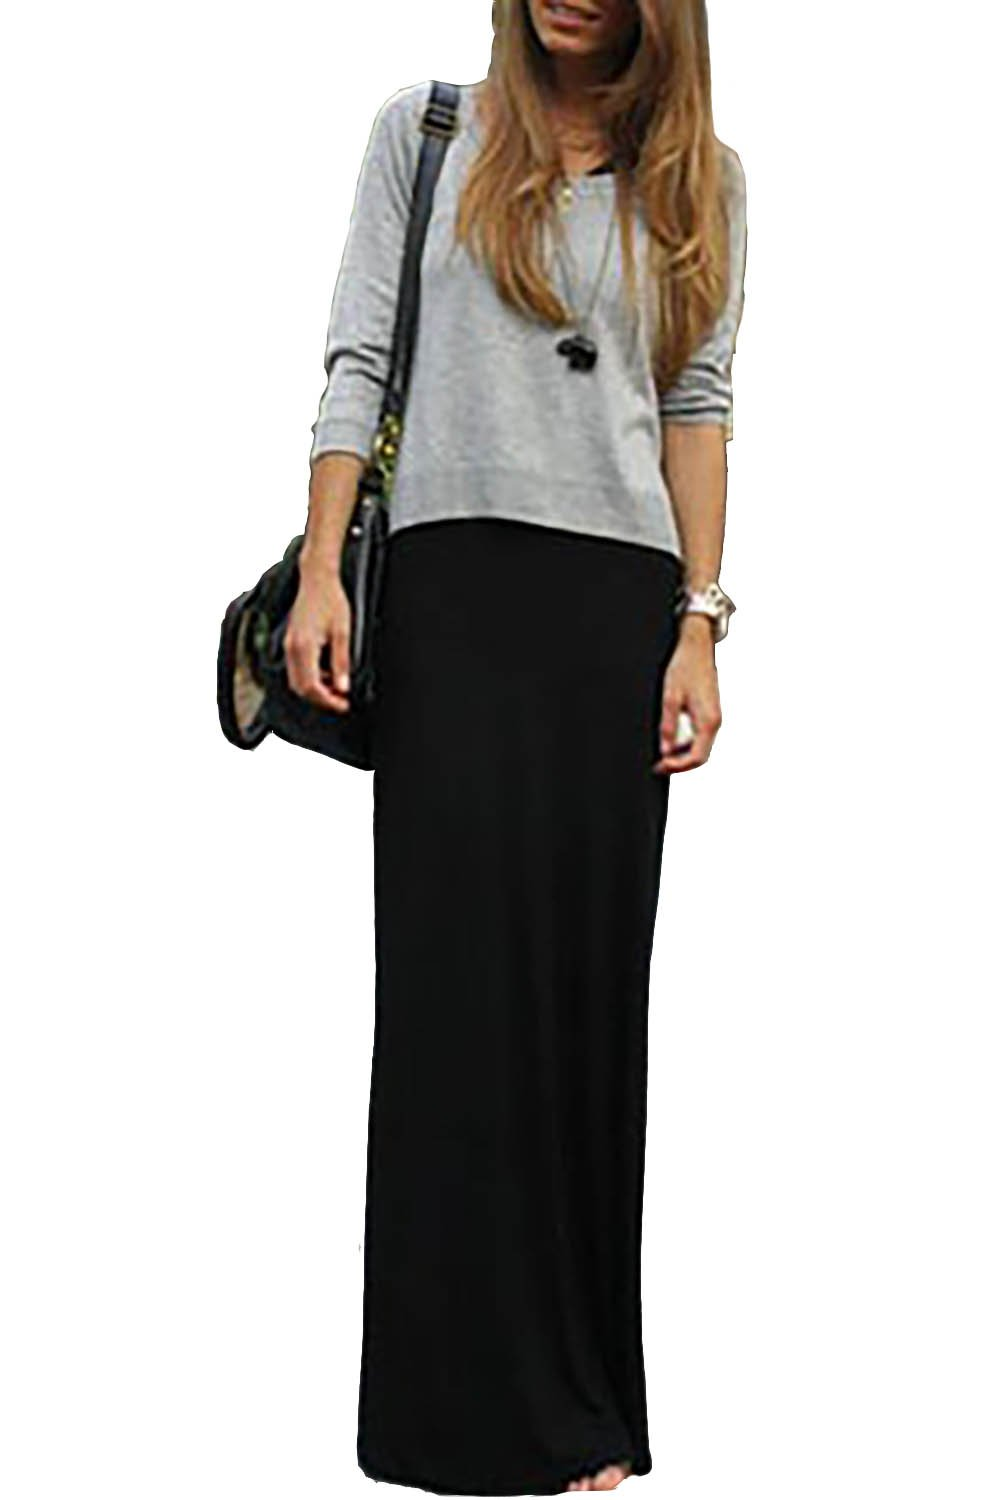 GotStyle Vivicastle Women's Spand Long Solid Rayon Foldover Maxi Skirt (Small, Black)